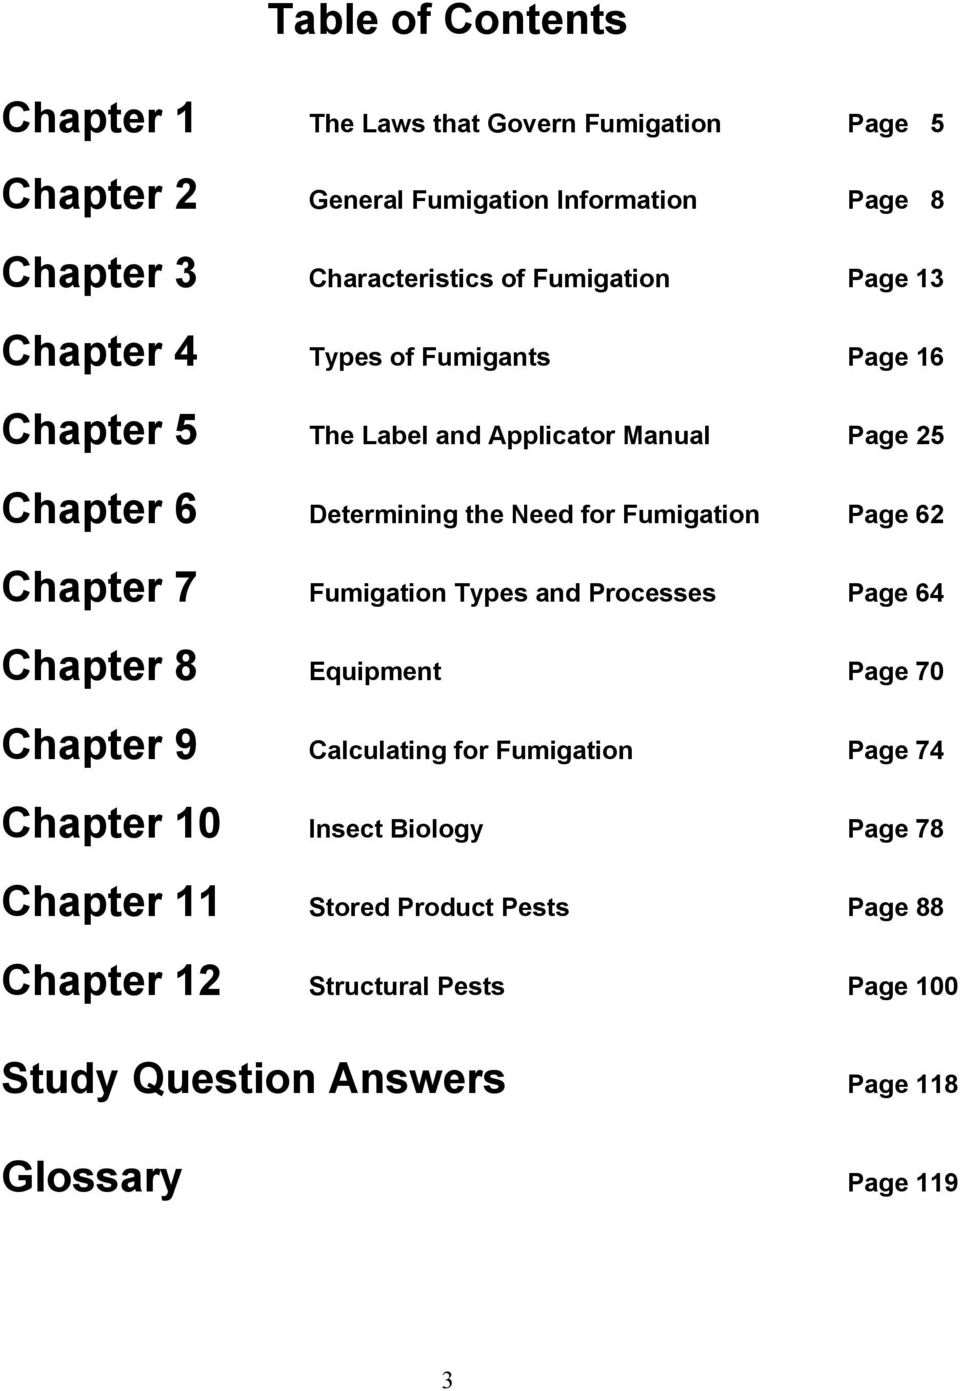 Fumigation Page 62 Chapter 7 Fumigation Types and Processes Page 64 Chapter  8 Equipment Page 70. 4 Acknowledgements This study guide ...